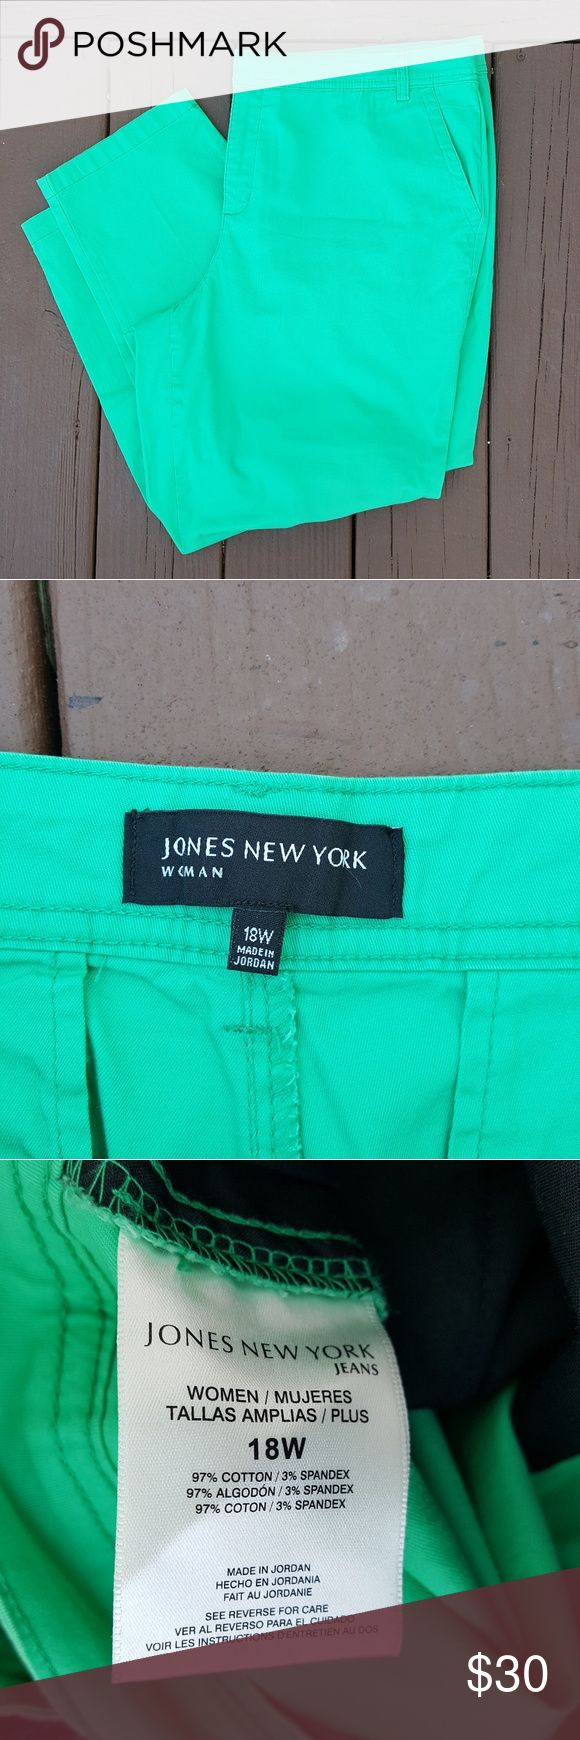 PLUS Jones New York mint green trousers Jones New York mint green trousers Beautiful mint green dress pants Excellent condition Jones New York Pants